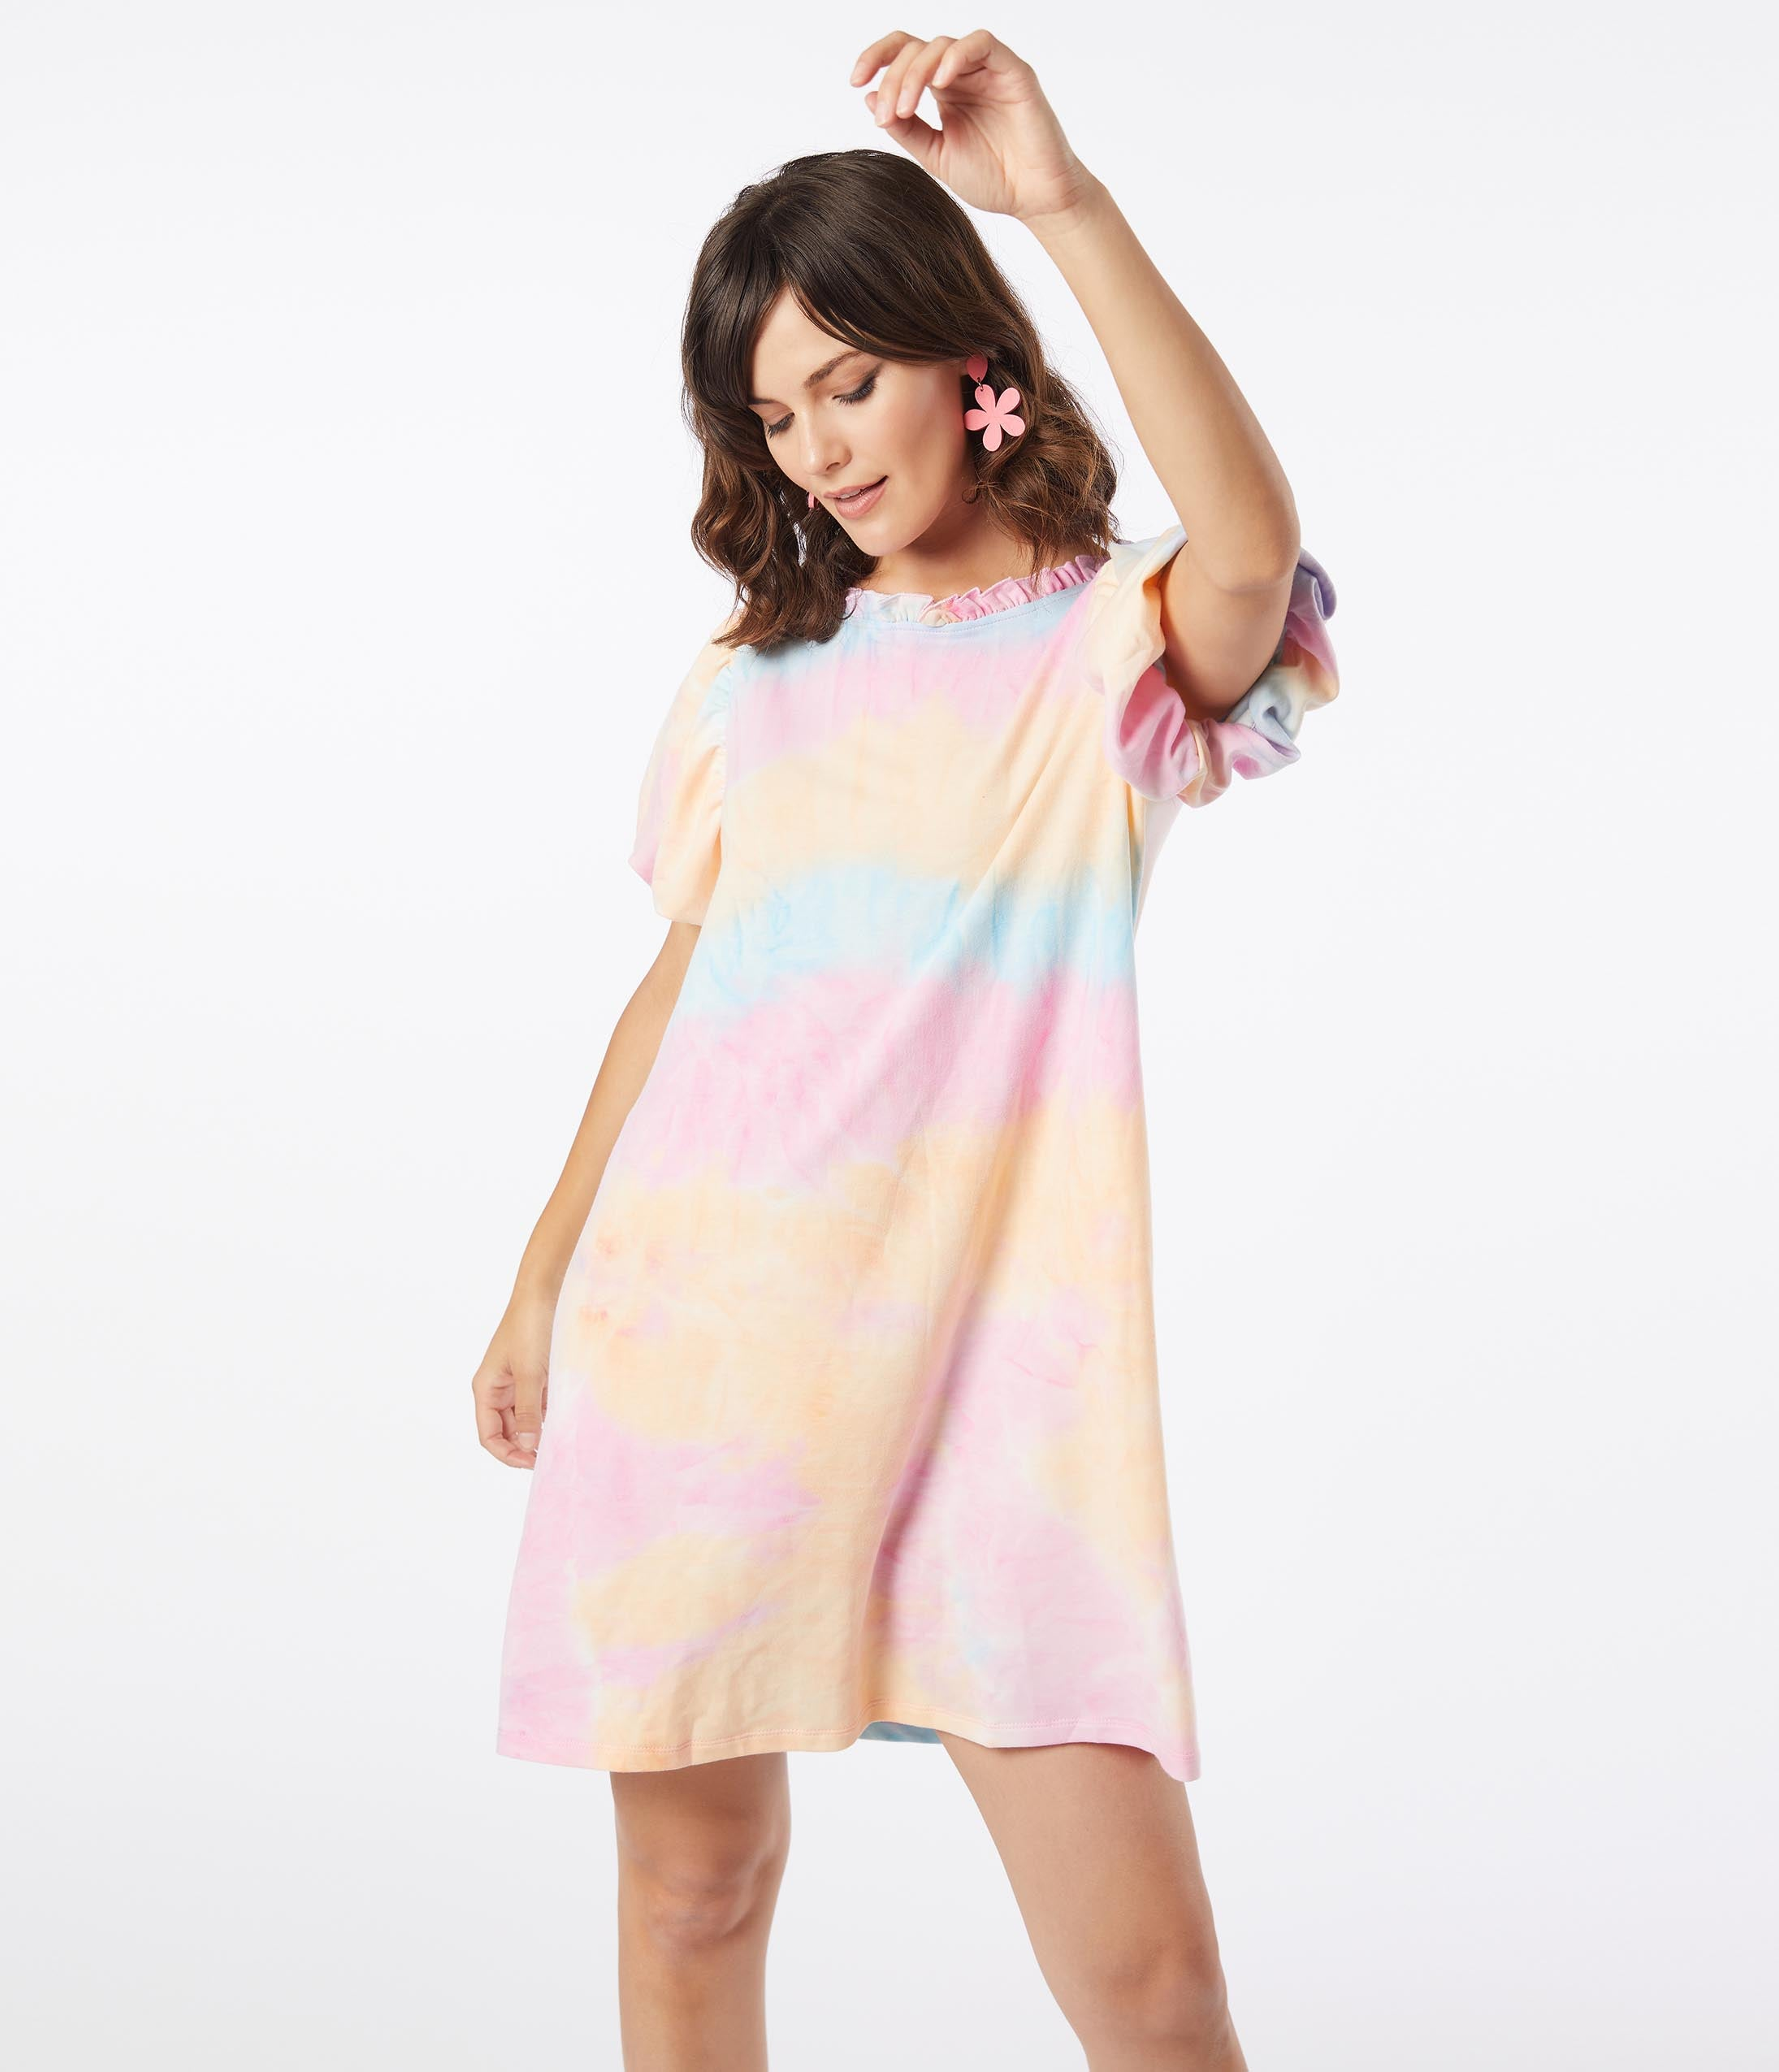 80s Dresses | Casual to Party Dresses Pastel Rainbow Tie Dye Casual Tunic Dress $48.00 AT vintagedancer.com